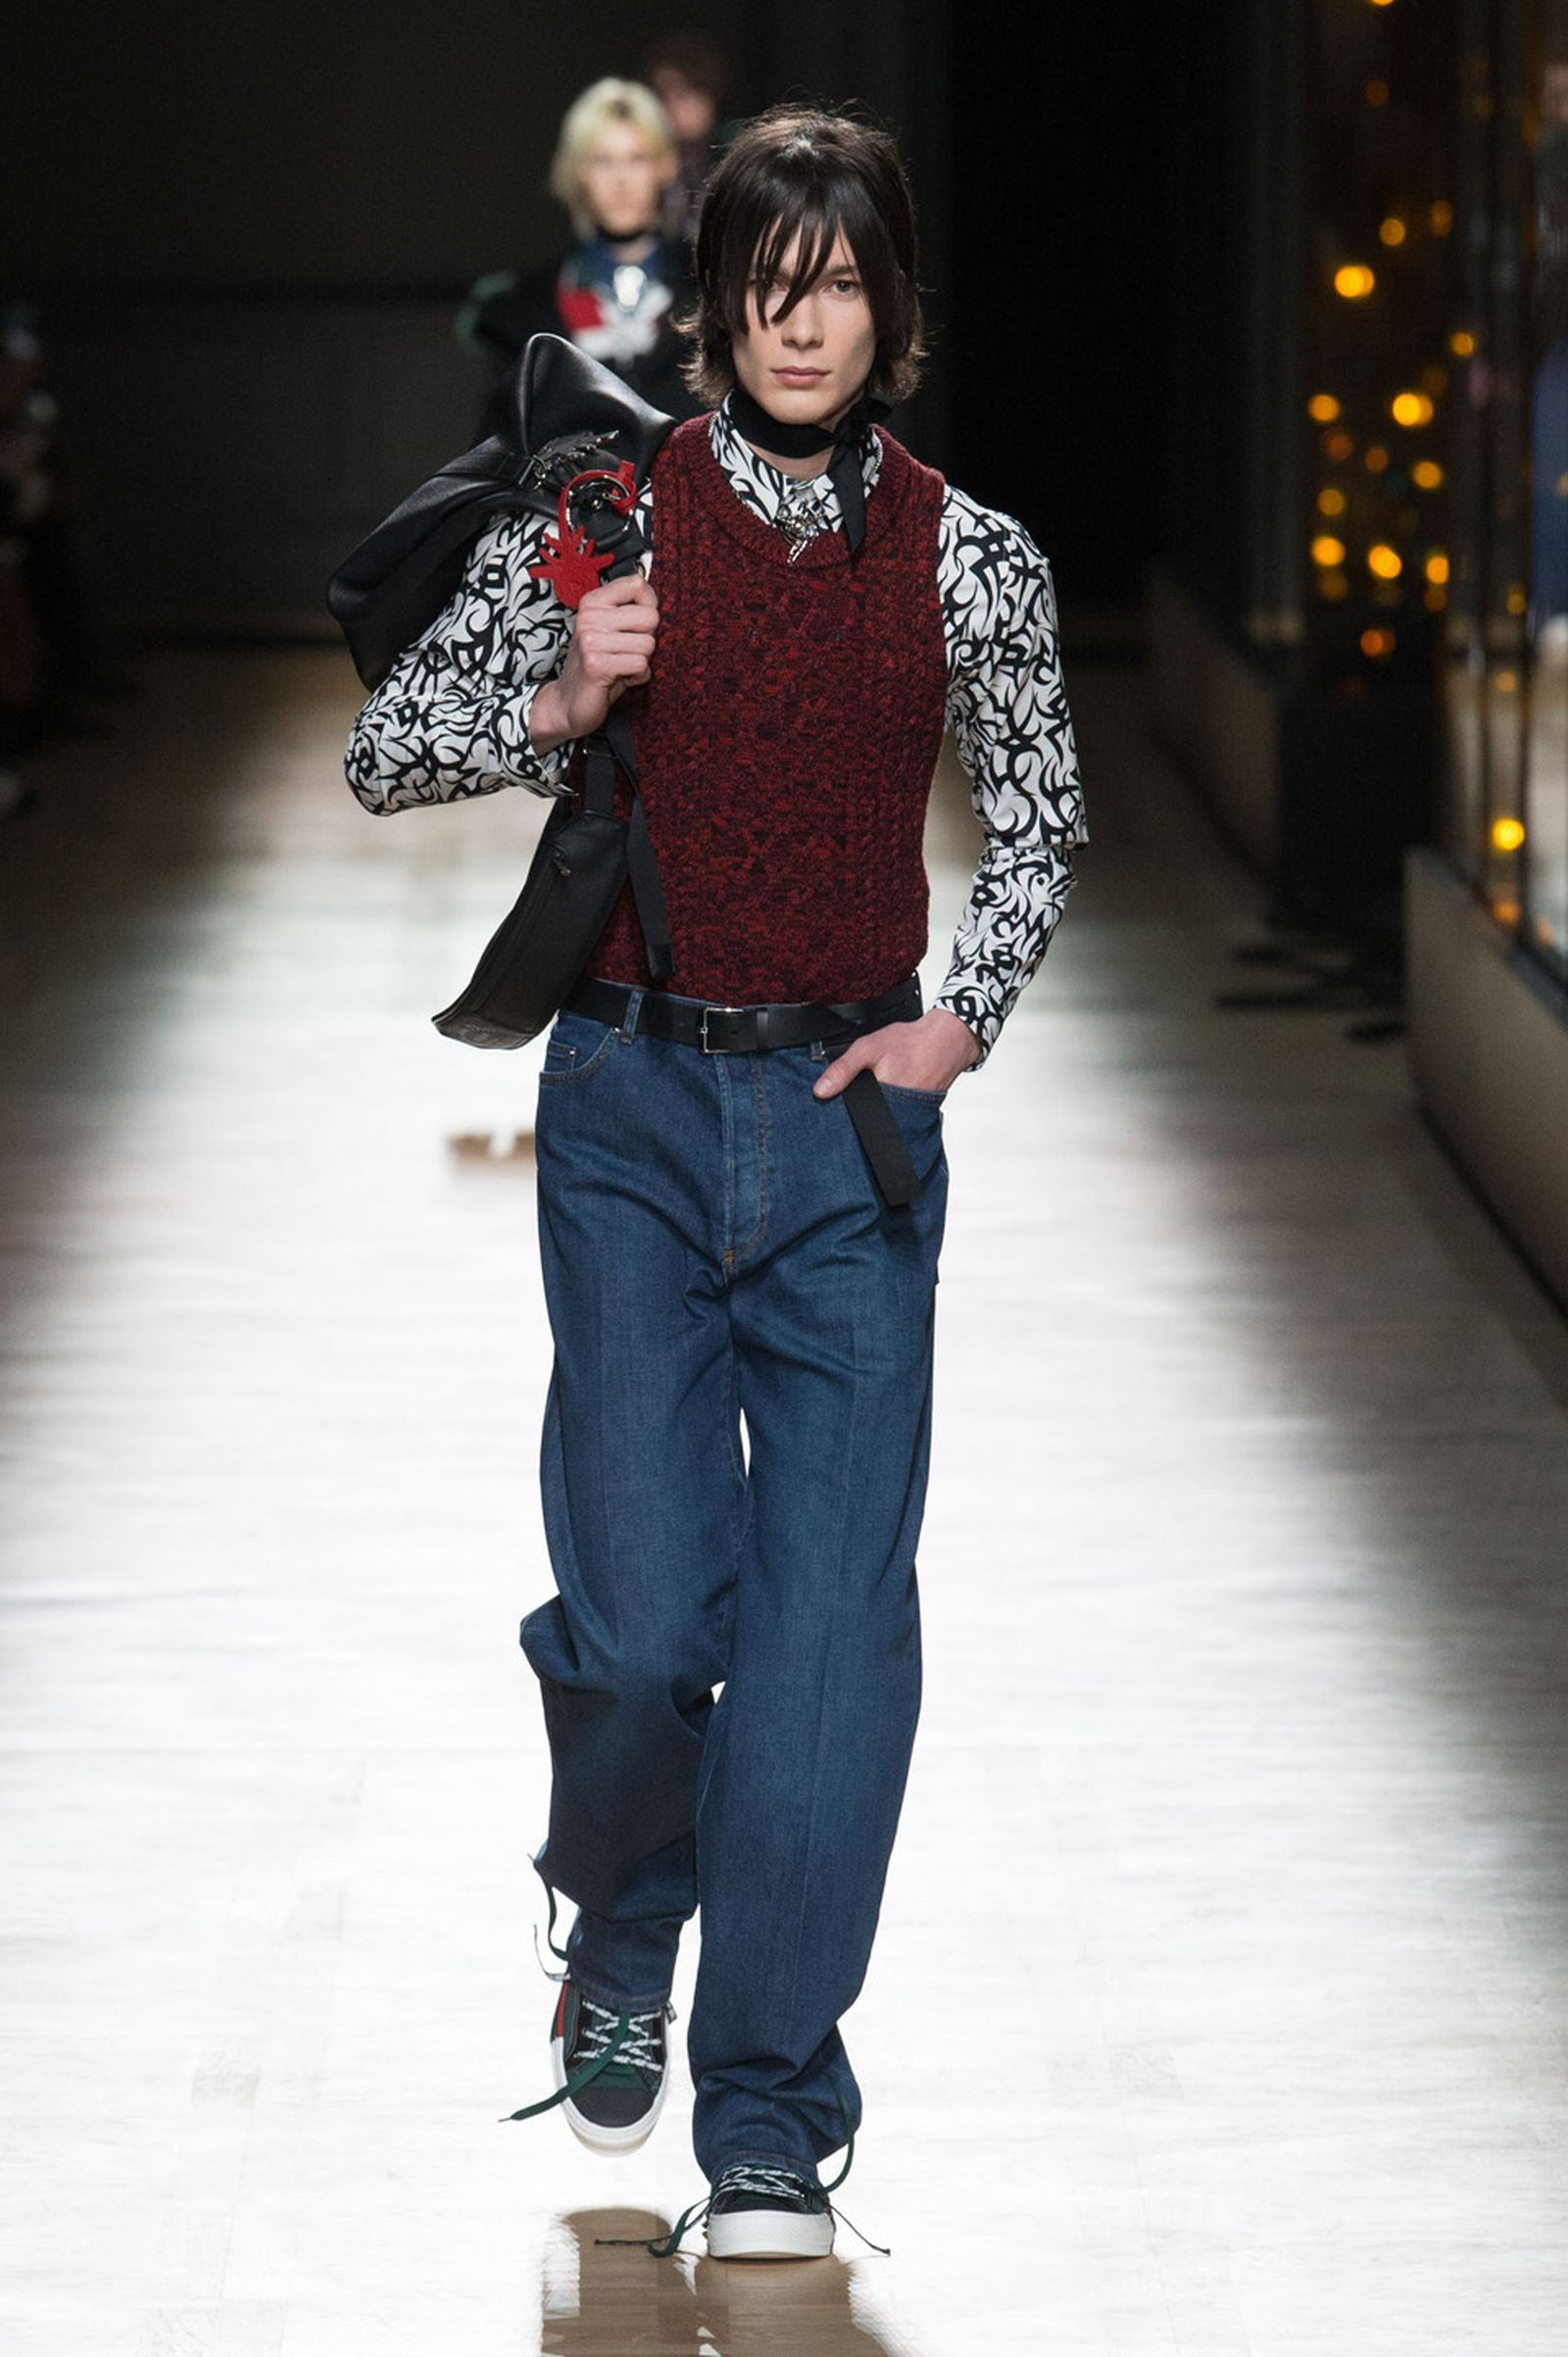 DIOR HOMME WINTER 18 19 BY PATRICE STABLE look20 Fall/WInter 2018 runway